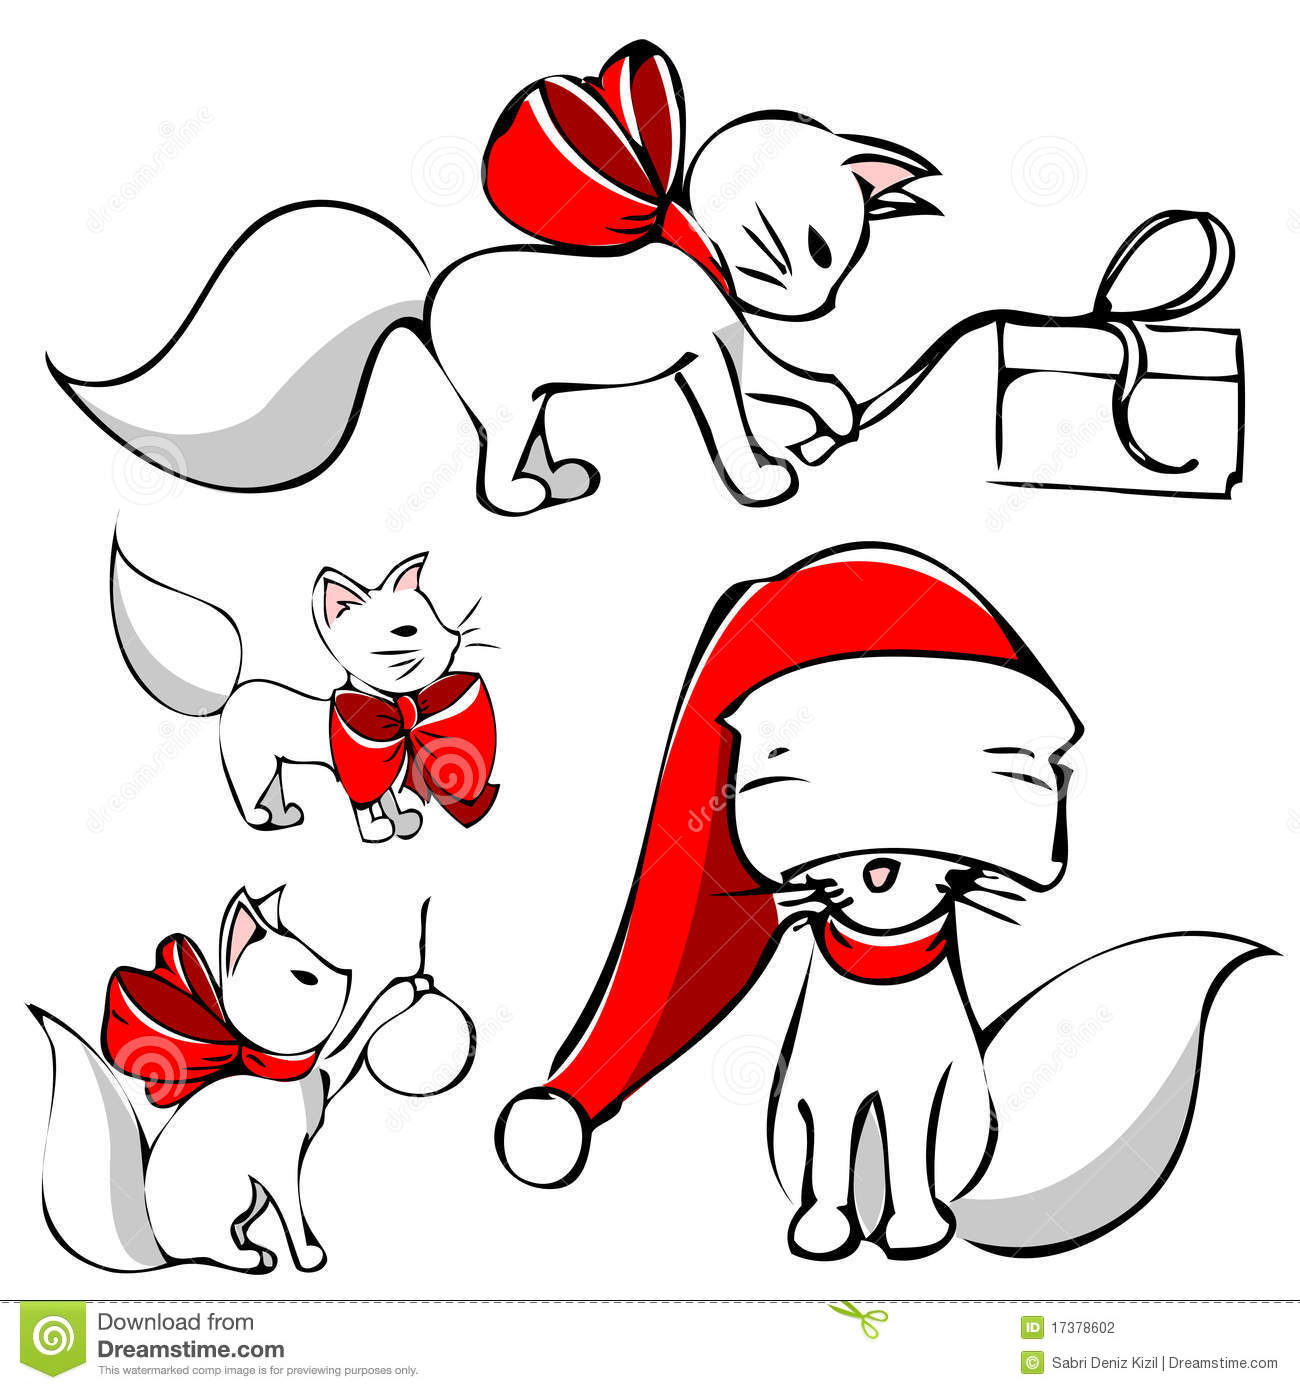 Cute christmas cat stock vector. Illustration of playful ...